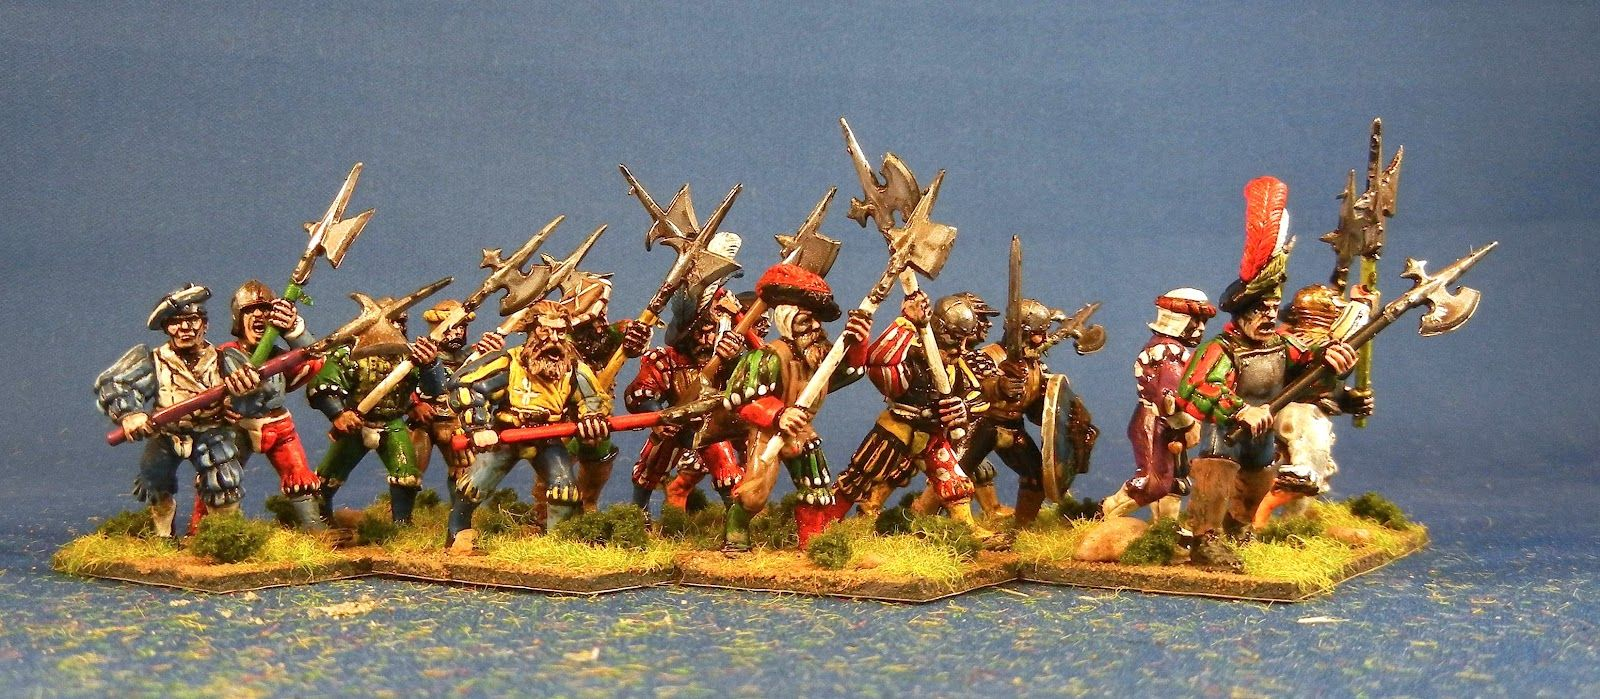 Bob's Miniature Wargaming Blog: More 28mm renaissance